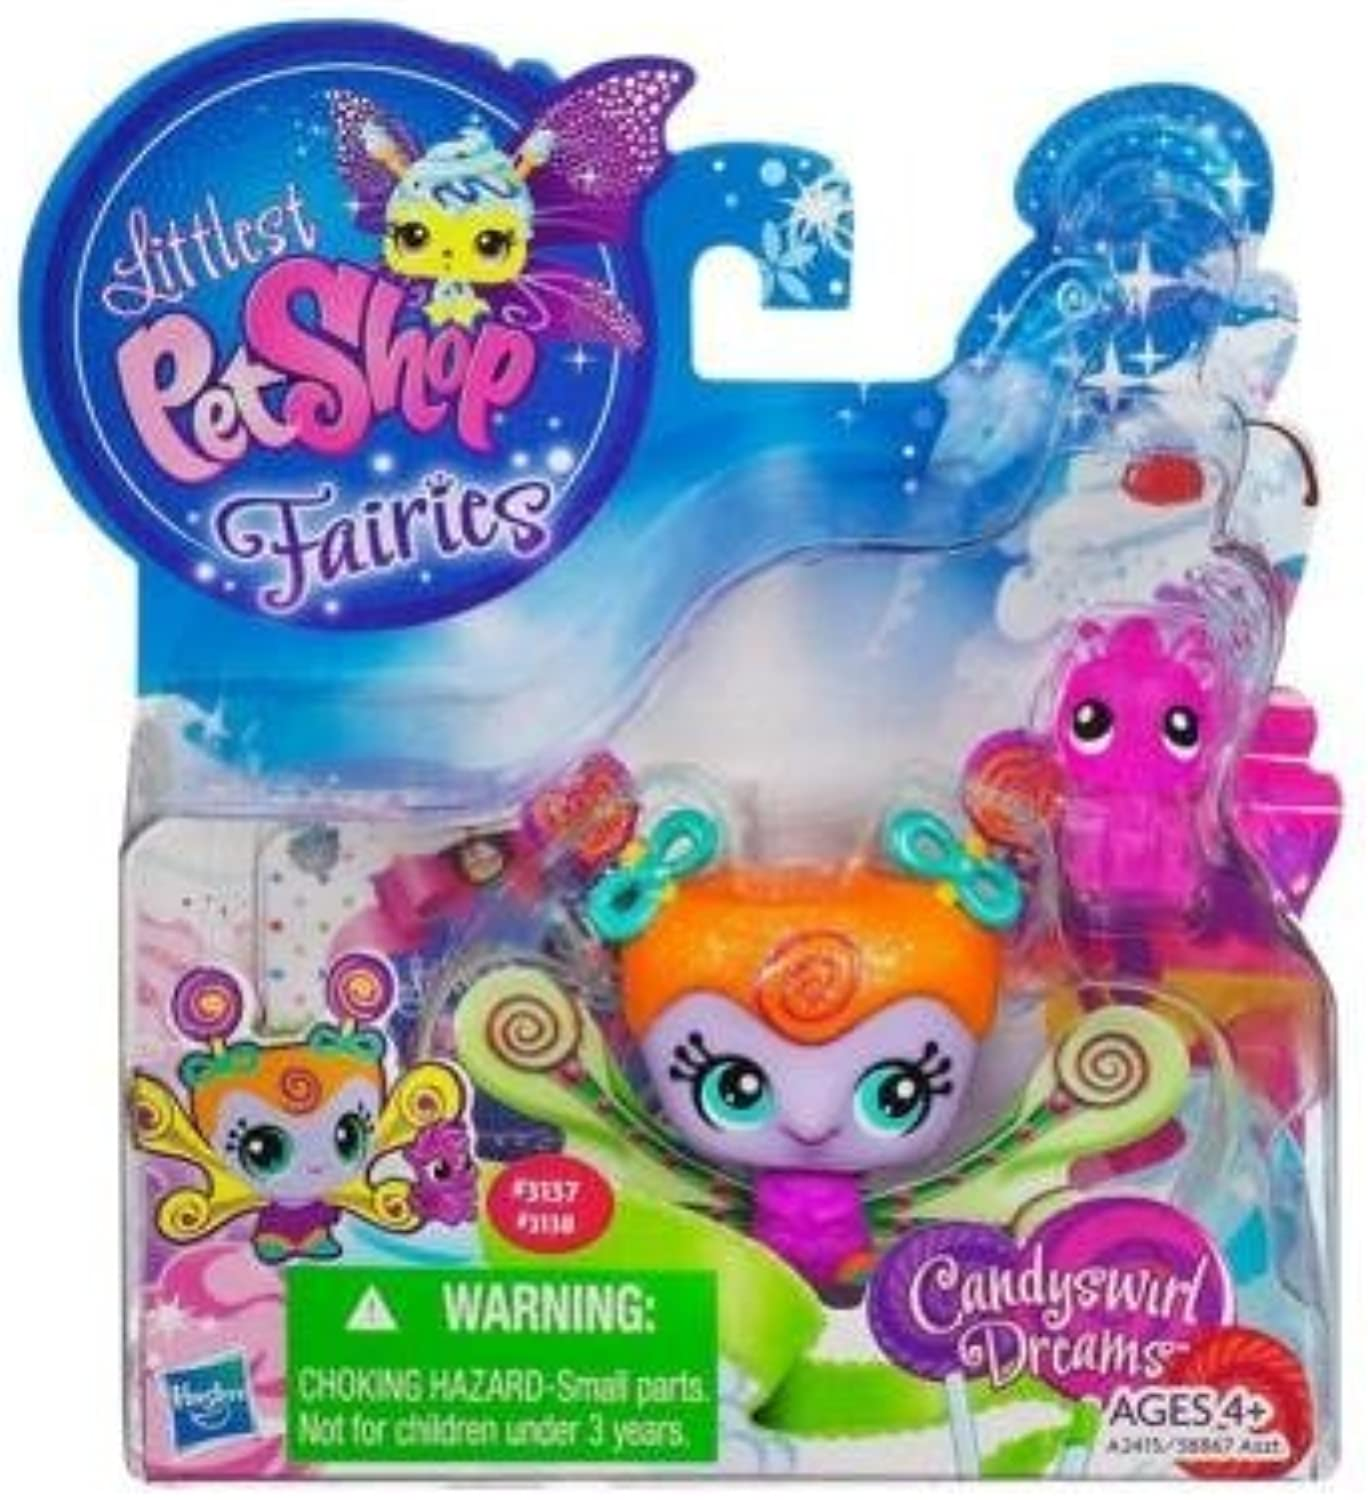 la red entera más baja Littlest Petshop Fairies Fairies Fairies candyswirl Dreams Honey Whirl Fairy by Littlest Petshop  Nuevos productos de artículos novedosos.